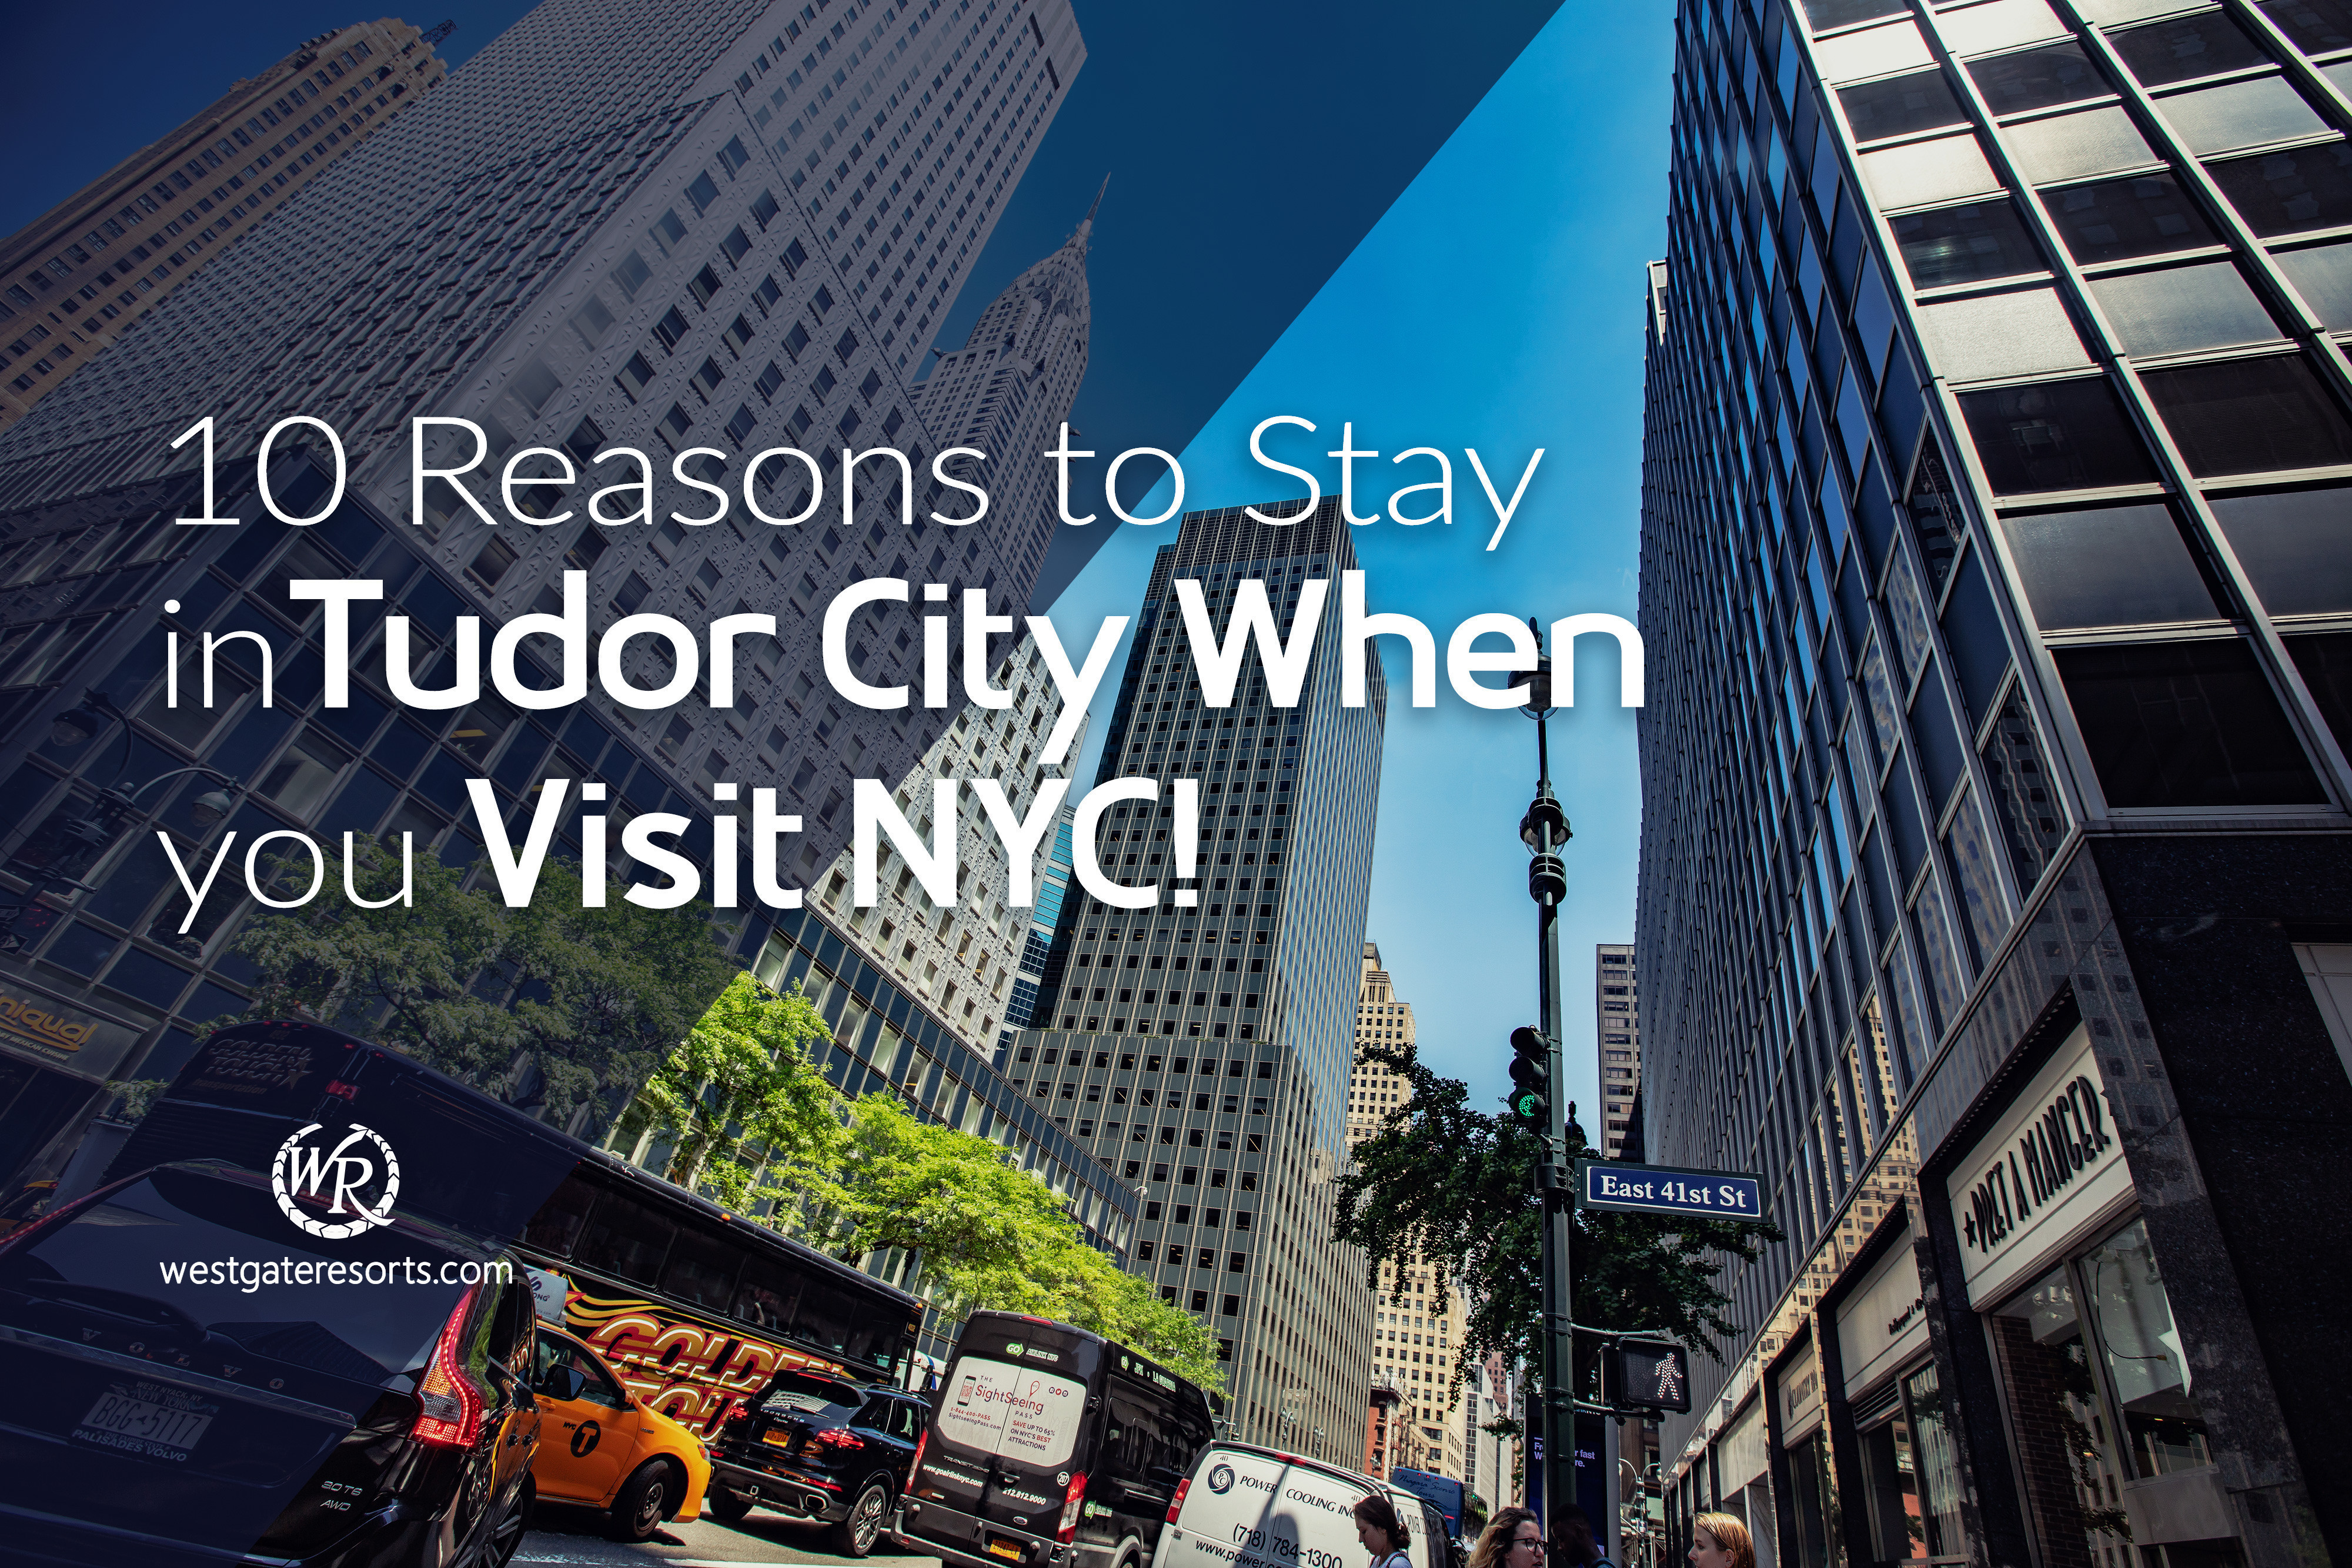 10 Reasons to Stay in Tudor City When You Visit NYC!